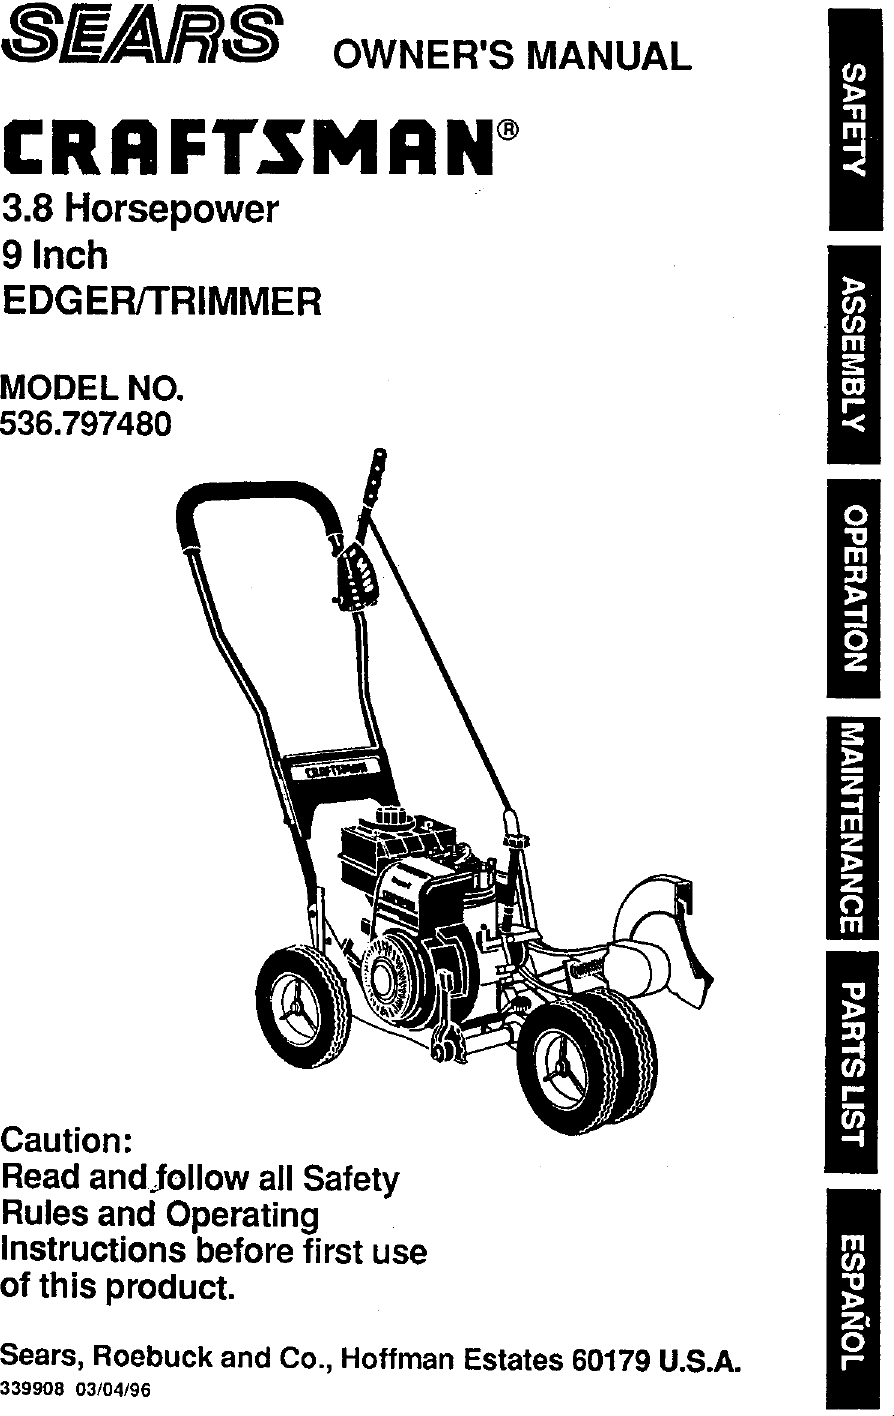 Craftsman 536797480 User Manual 3.8 HP 9 EDGER/TRIMMER